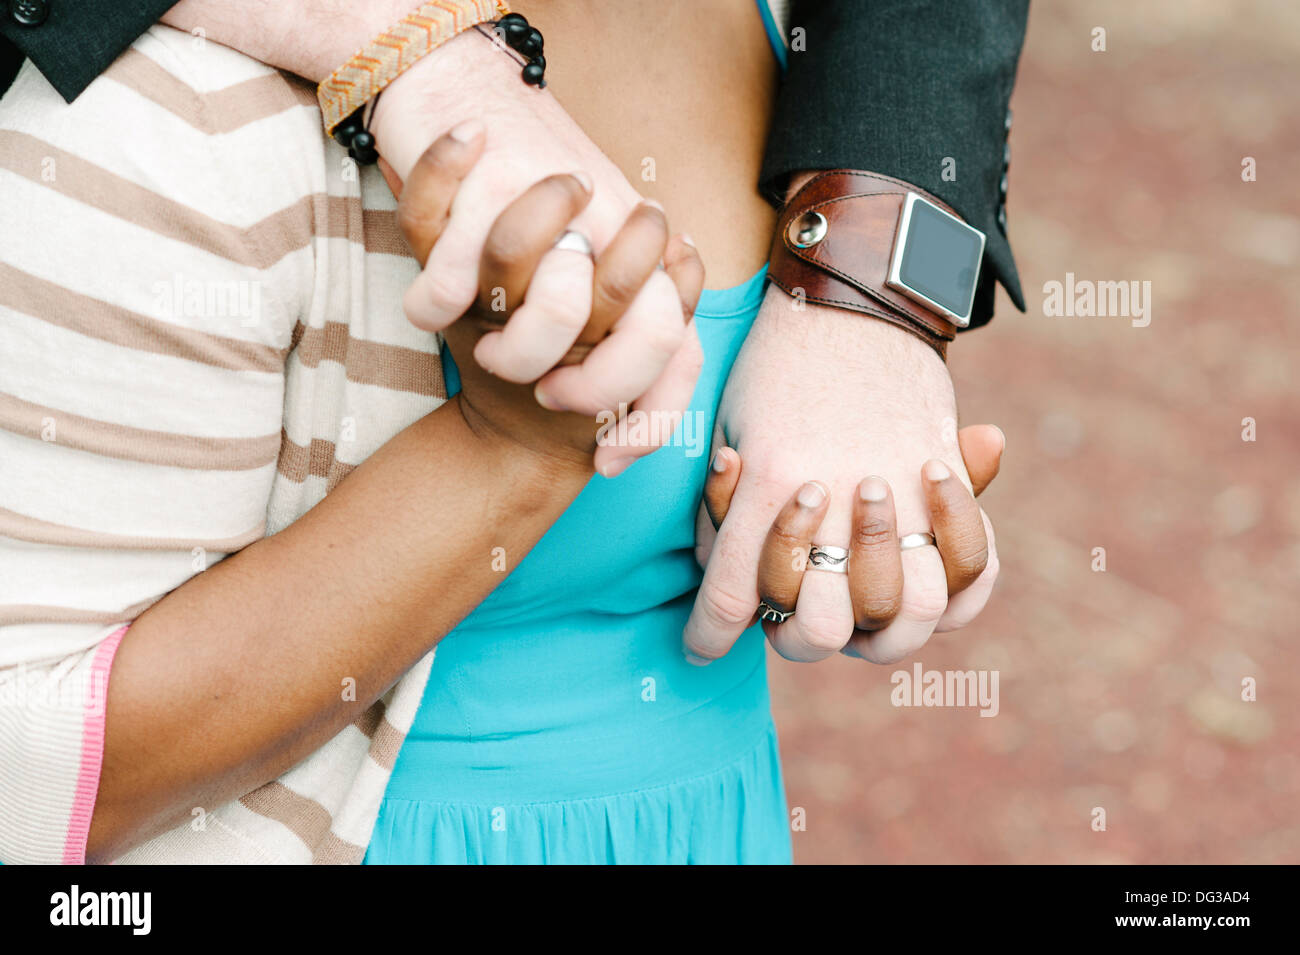 Interracial Couple Holding Hands, Close Up - Stock Image